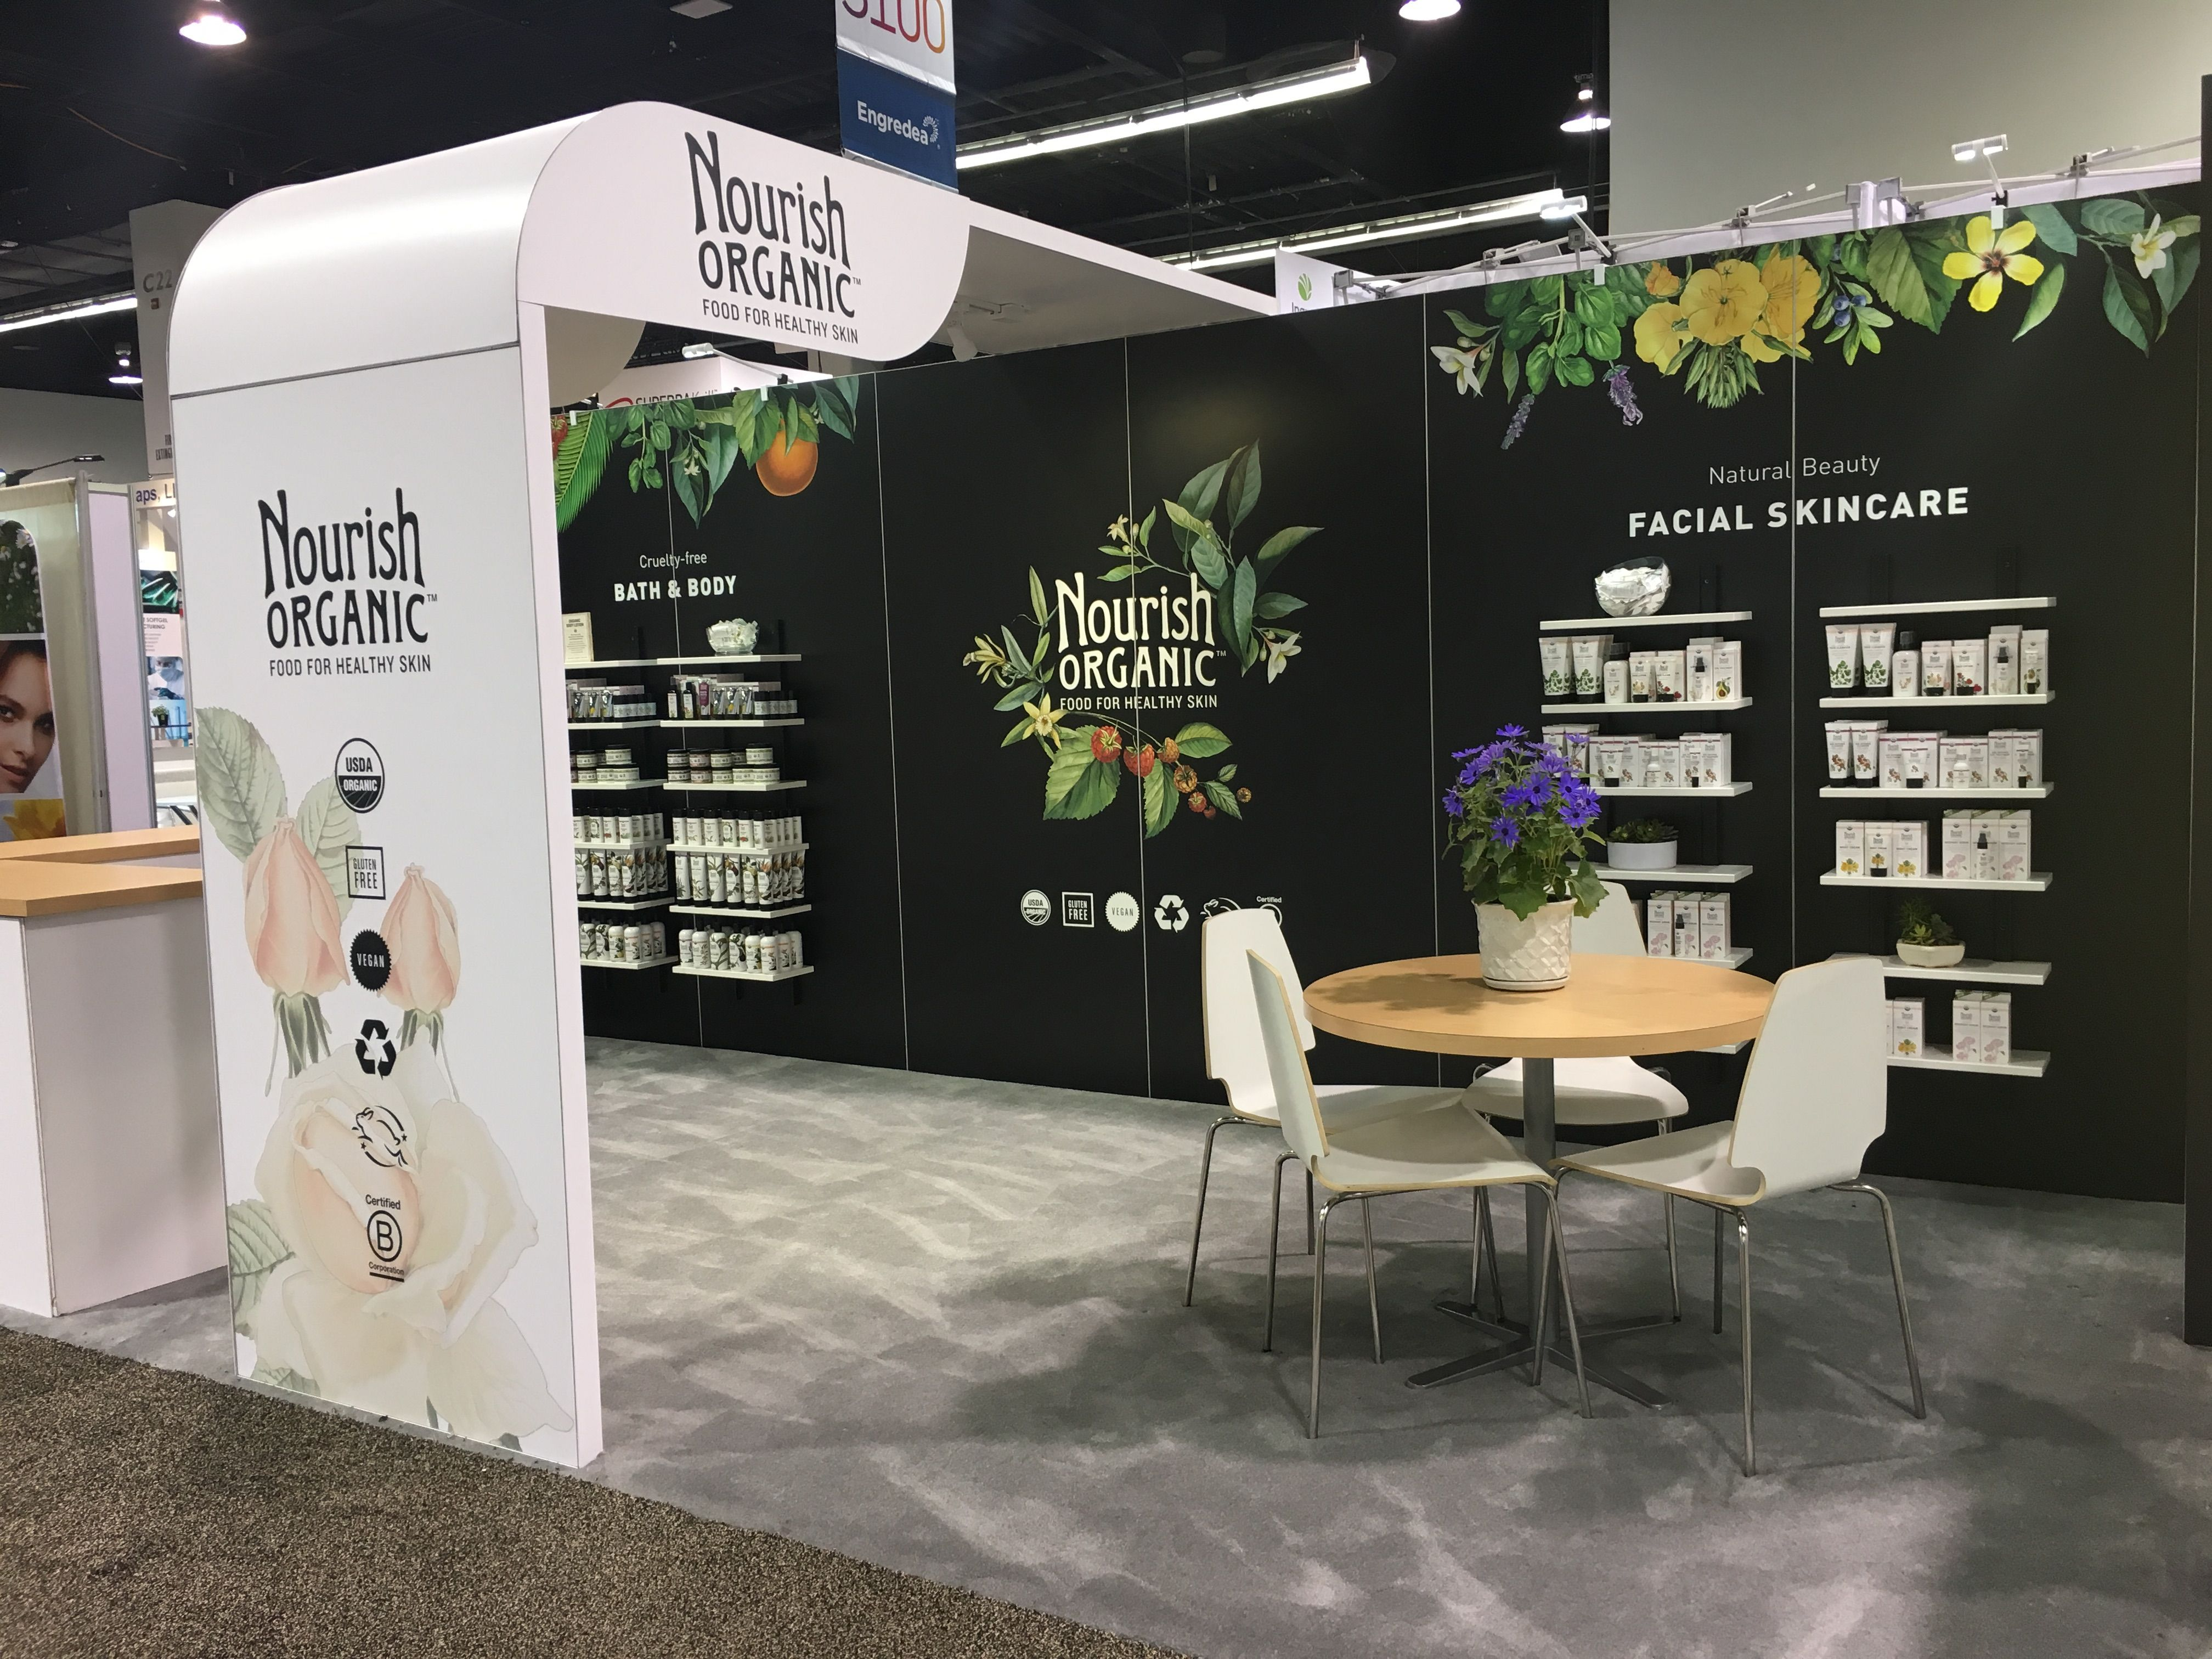 572e81607de9 The 10x20 rental trade show exhibit for Nourish Organics at the Natural  Product Expo West show displayed beautiful graphics and an open booth flow  fit for ...